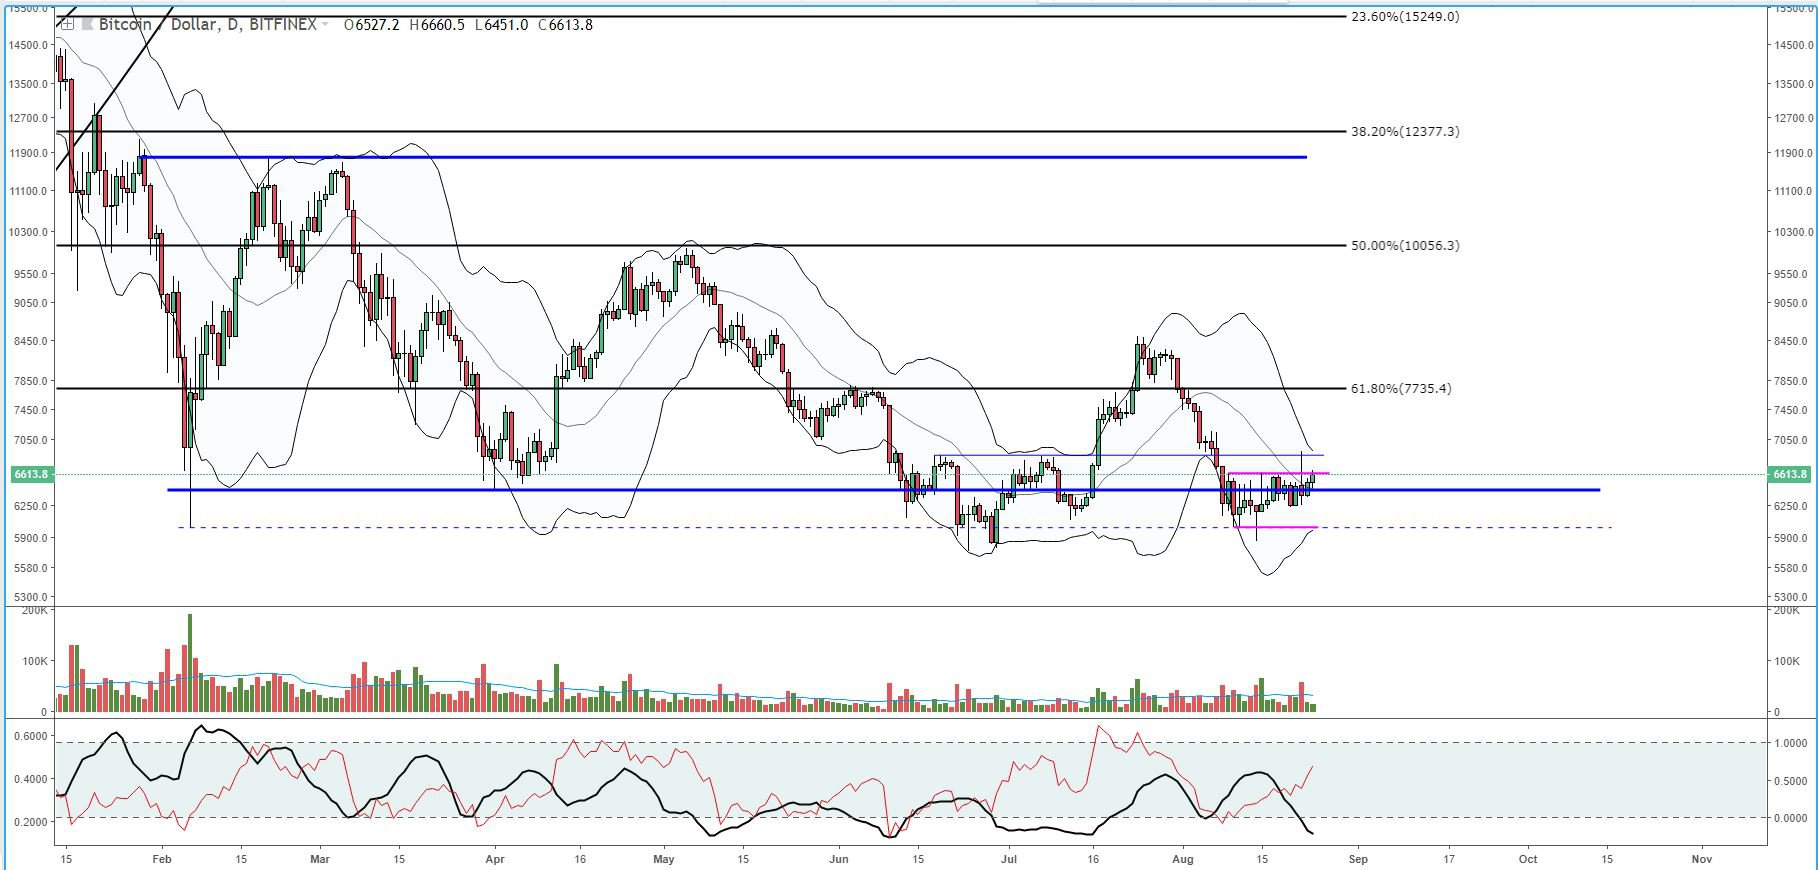 Bitcoin Price Analysis: High Shorts Count Could Signal Price Hike